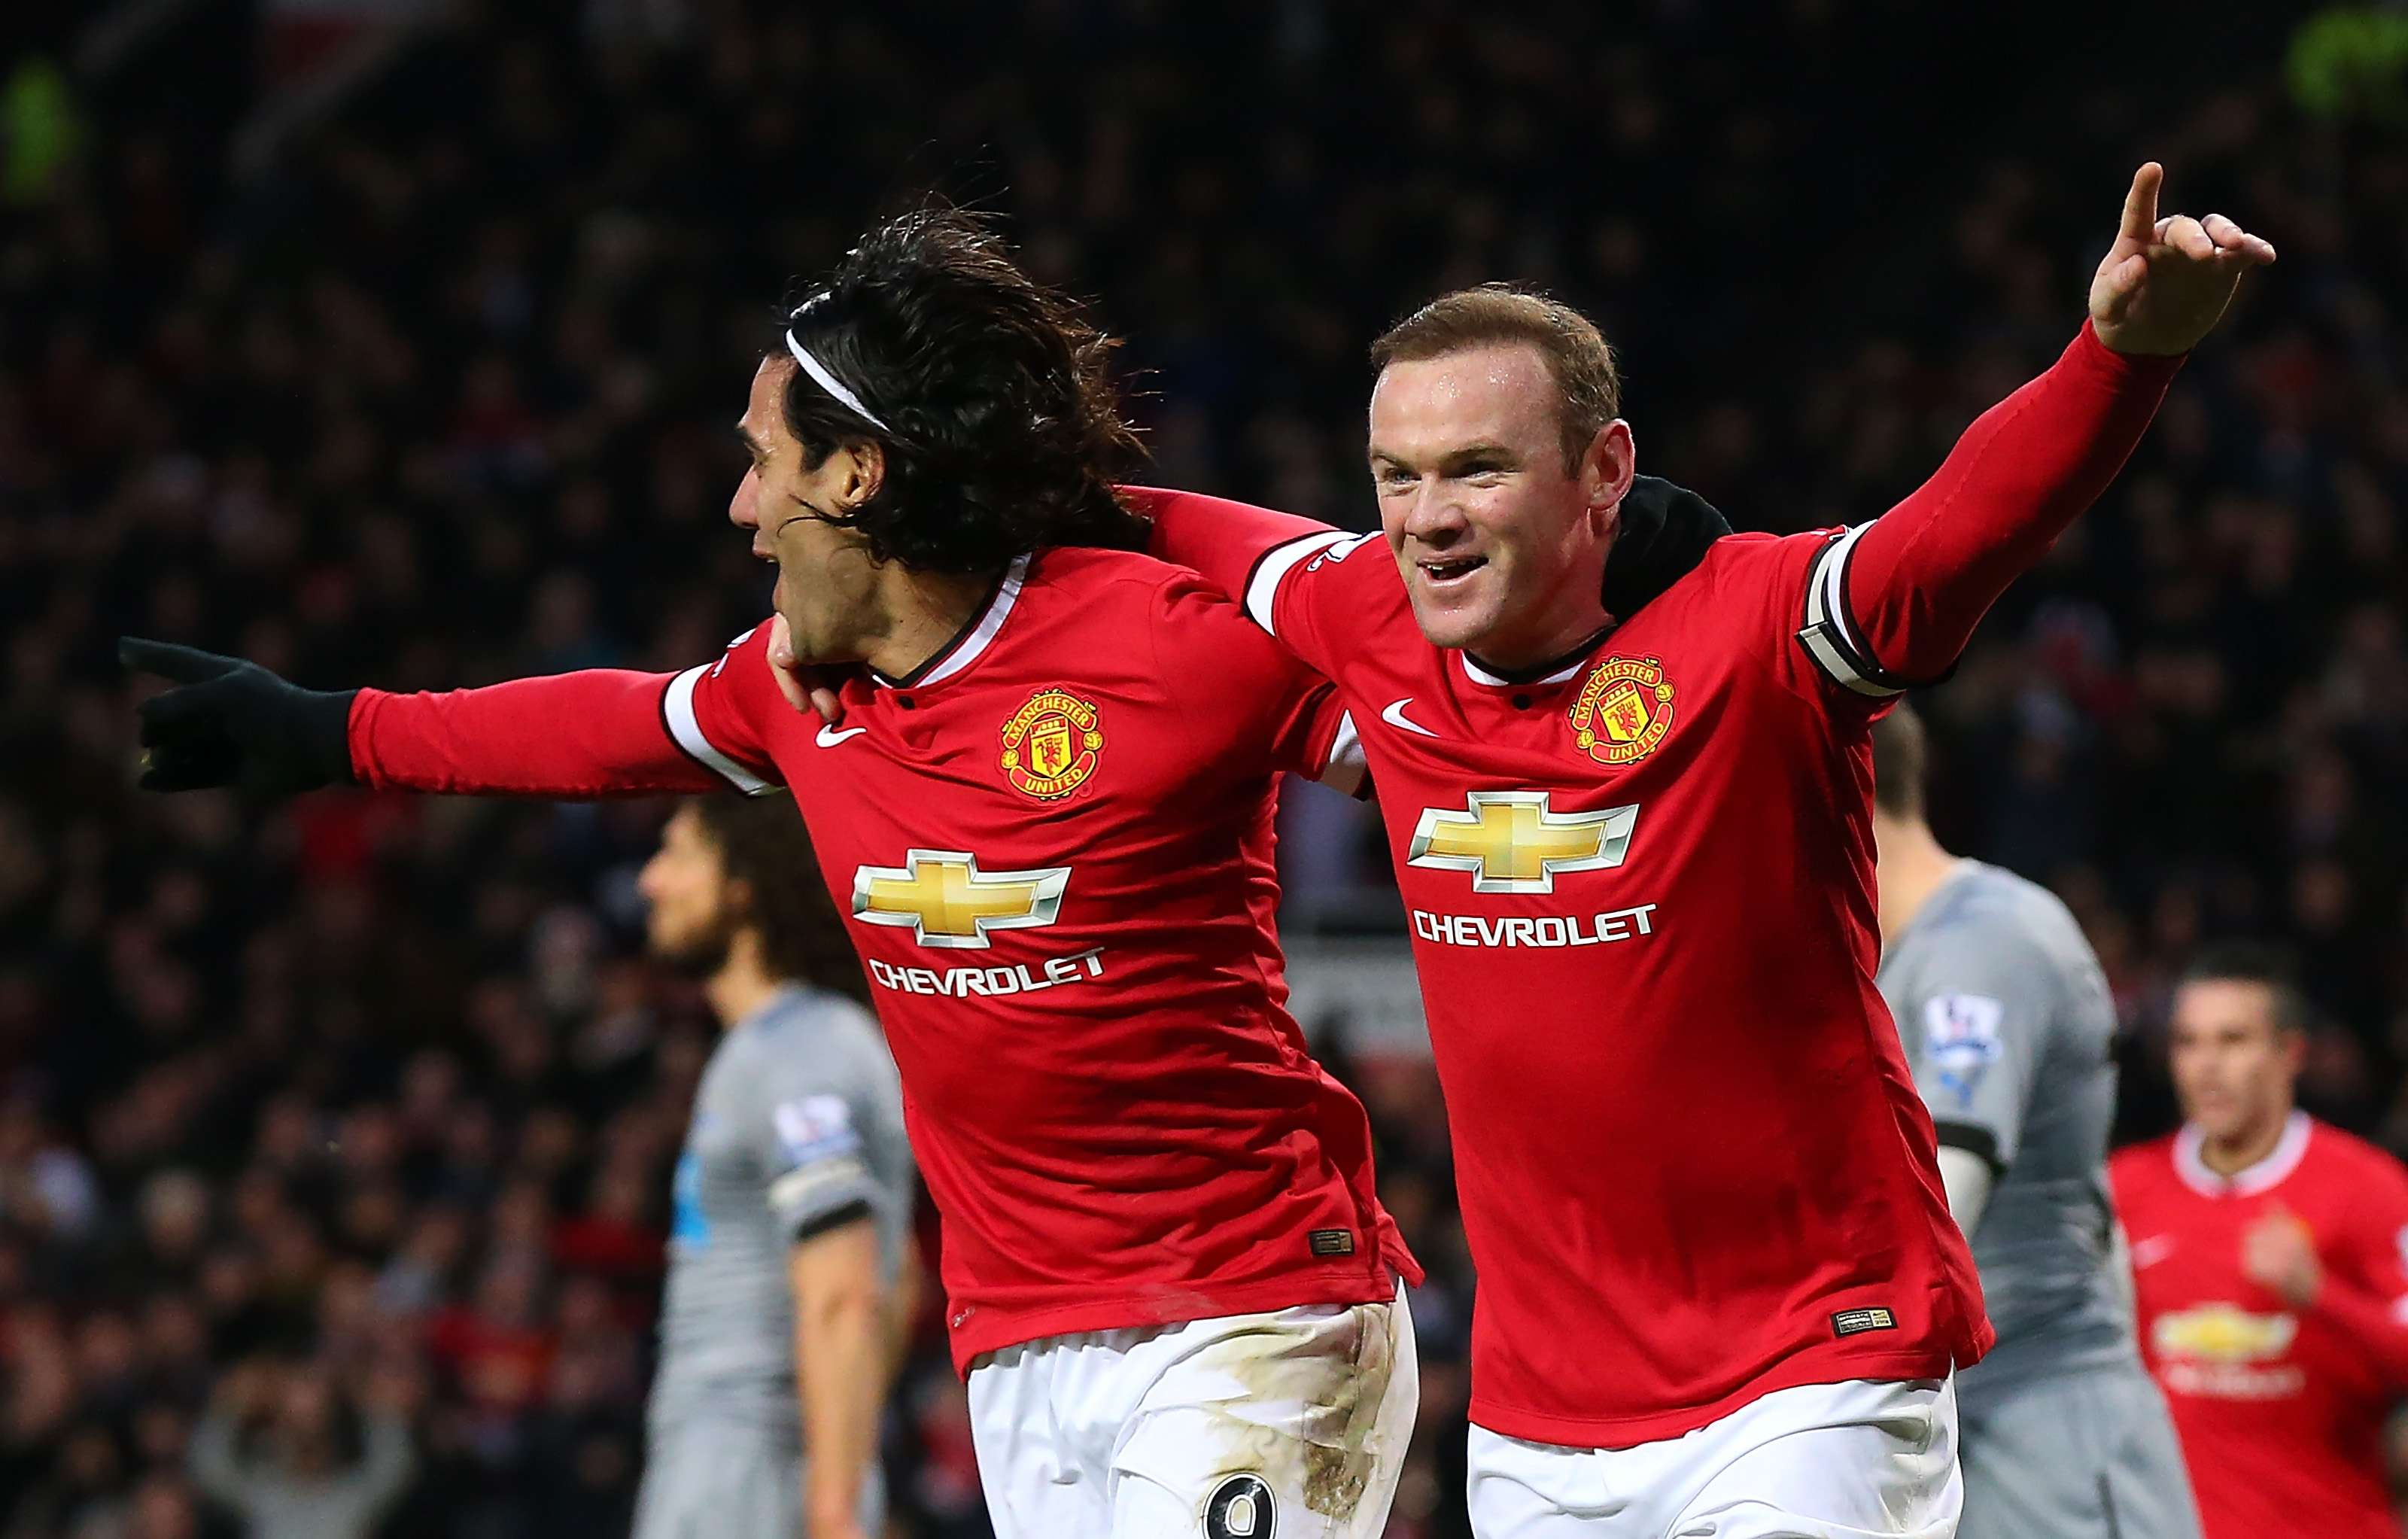 Rooney y Falcao festejan la victoria. Foto: Getty Images